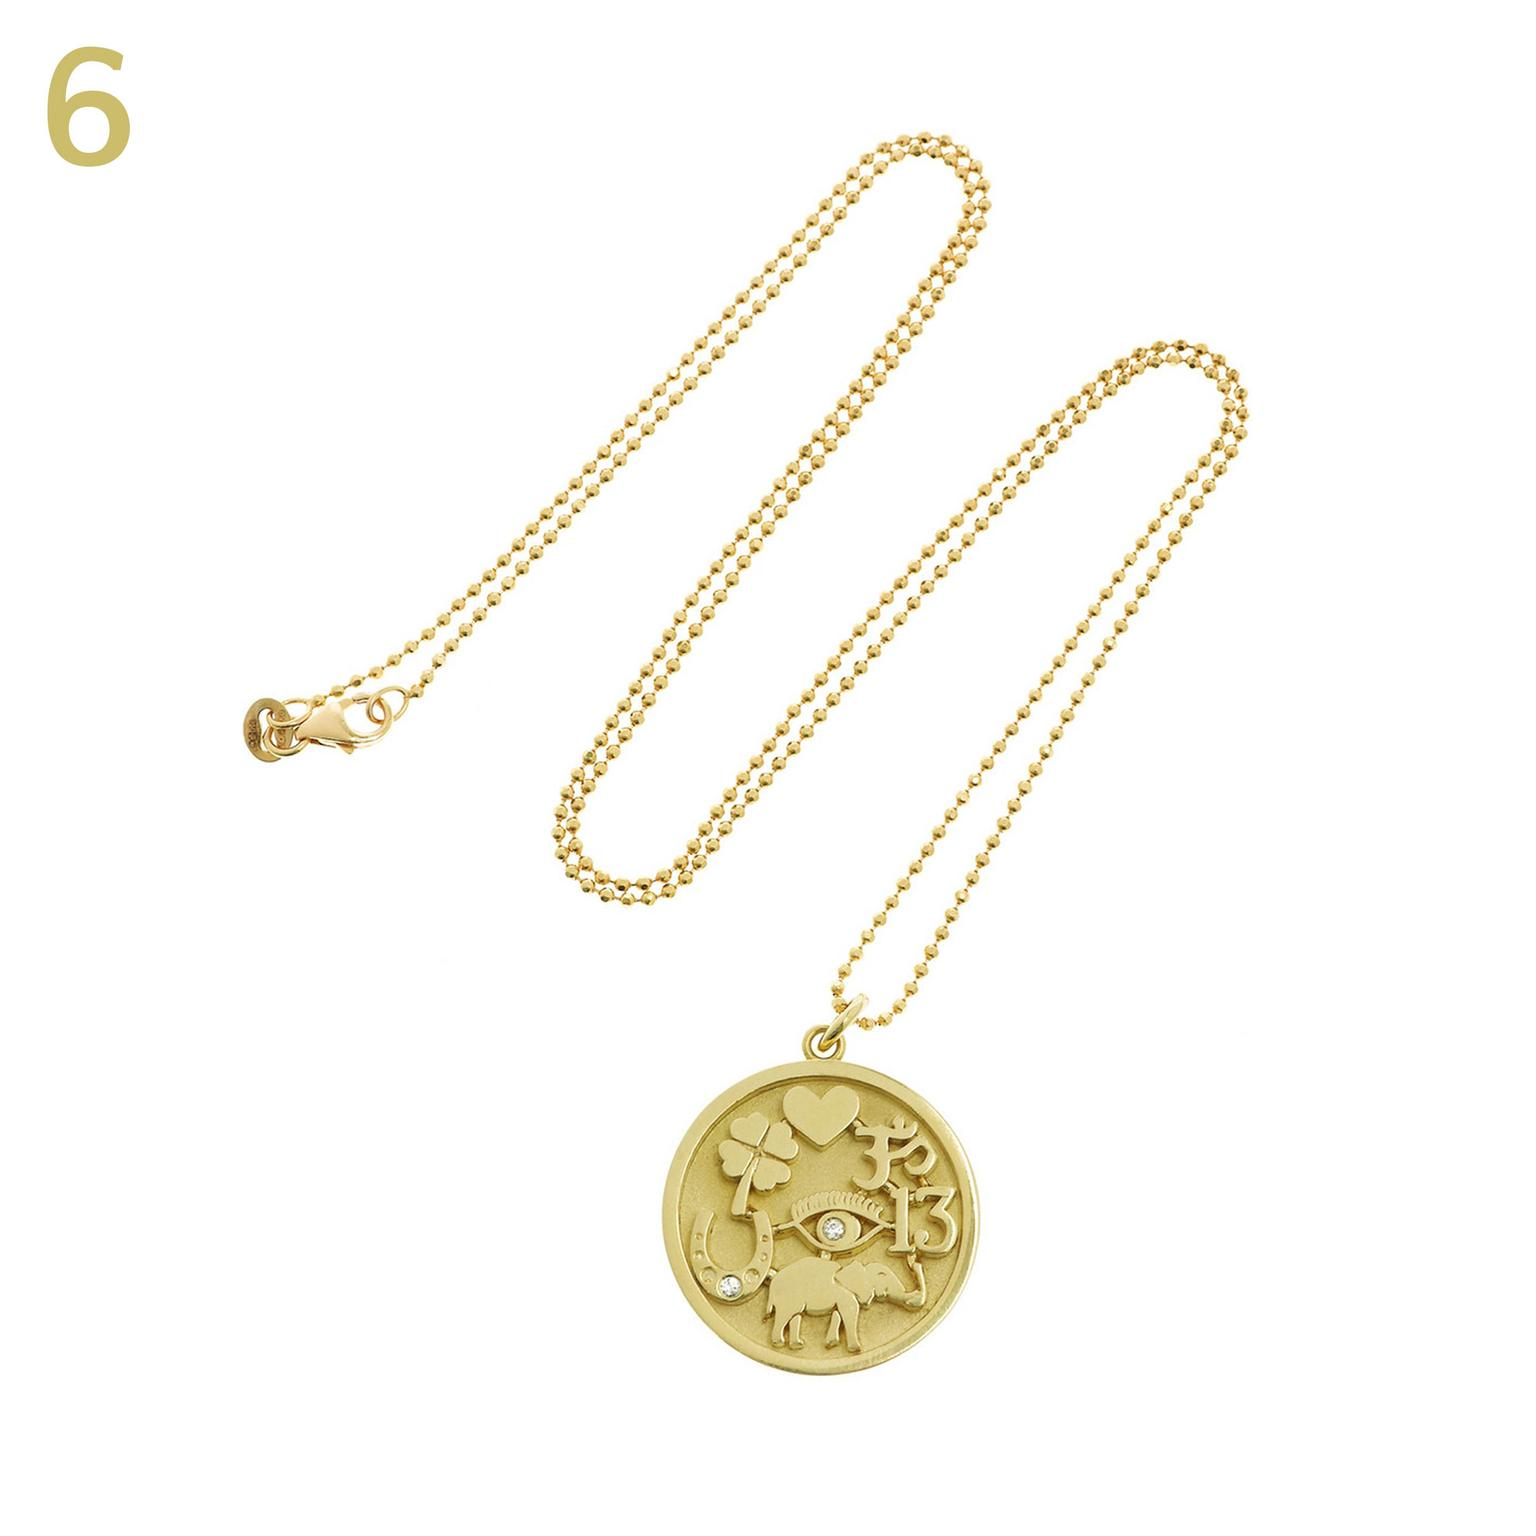 Jennifer Meyer Good Luck gold and diamond pendant